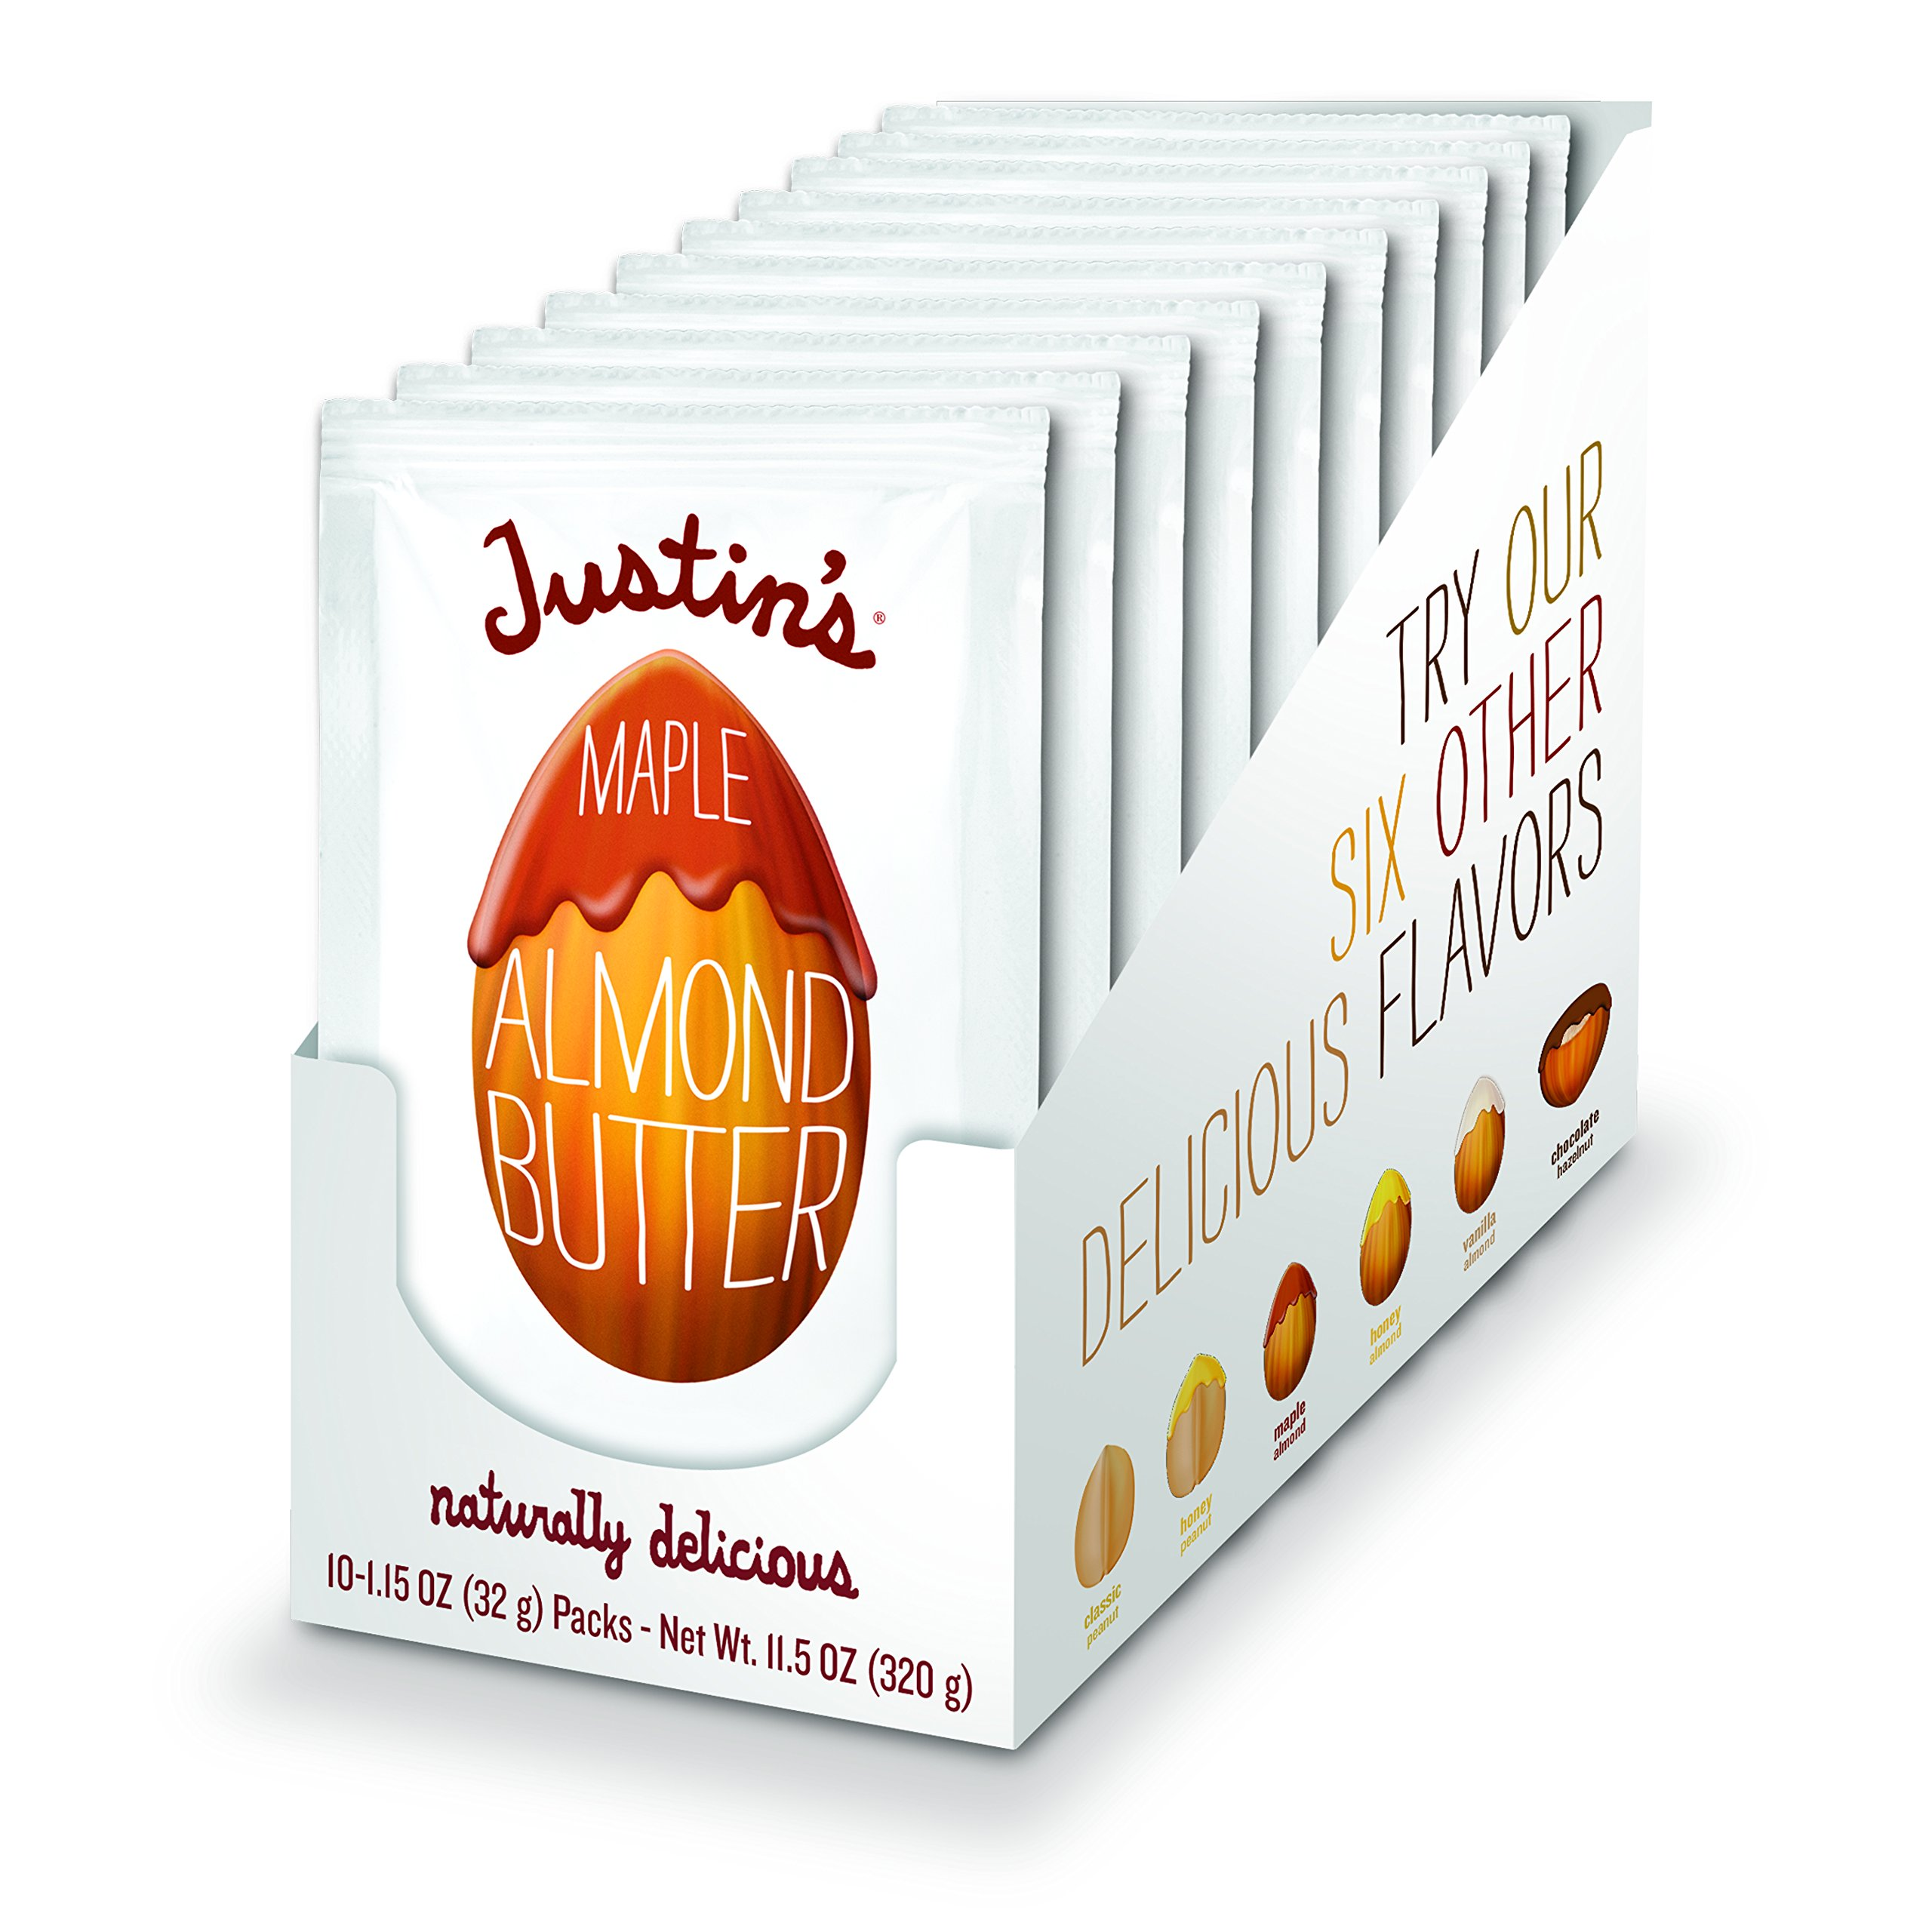 Maple Almond Butter Squeeze Packs by Justin's, Gluten-free, Non-GMO, Vegan, Responsibly Sourced, Pack of 10 (1.15oz each)